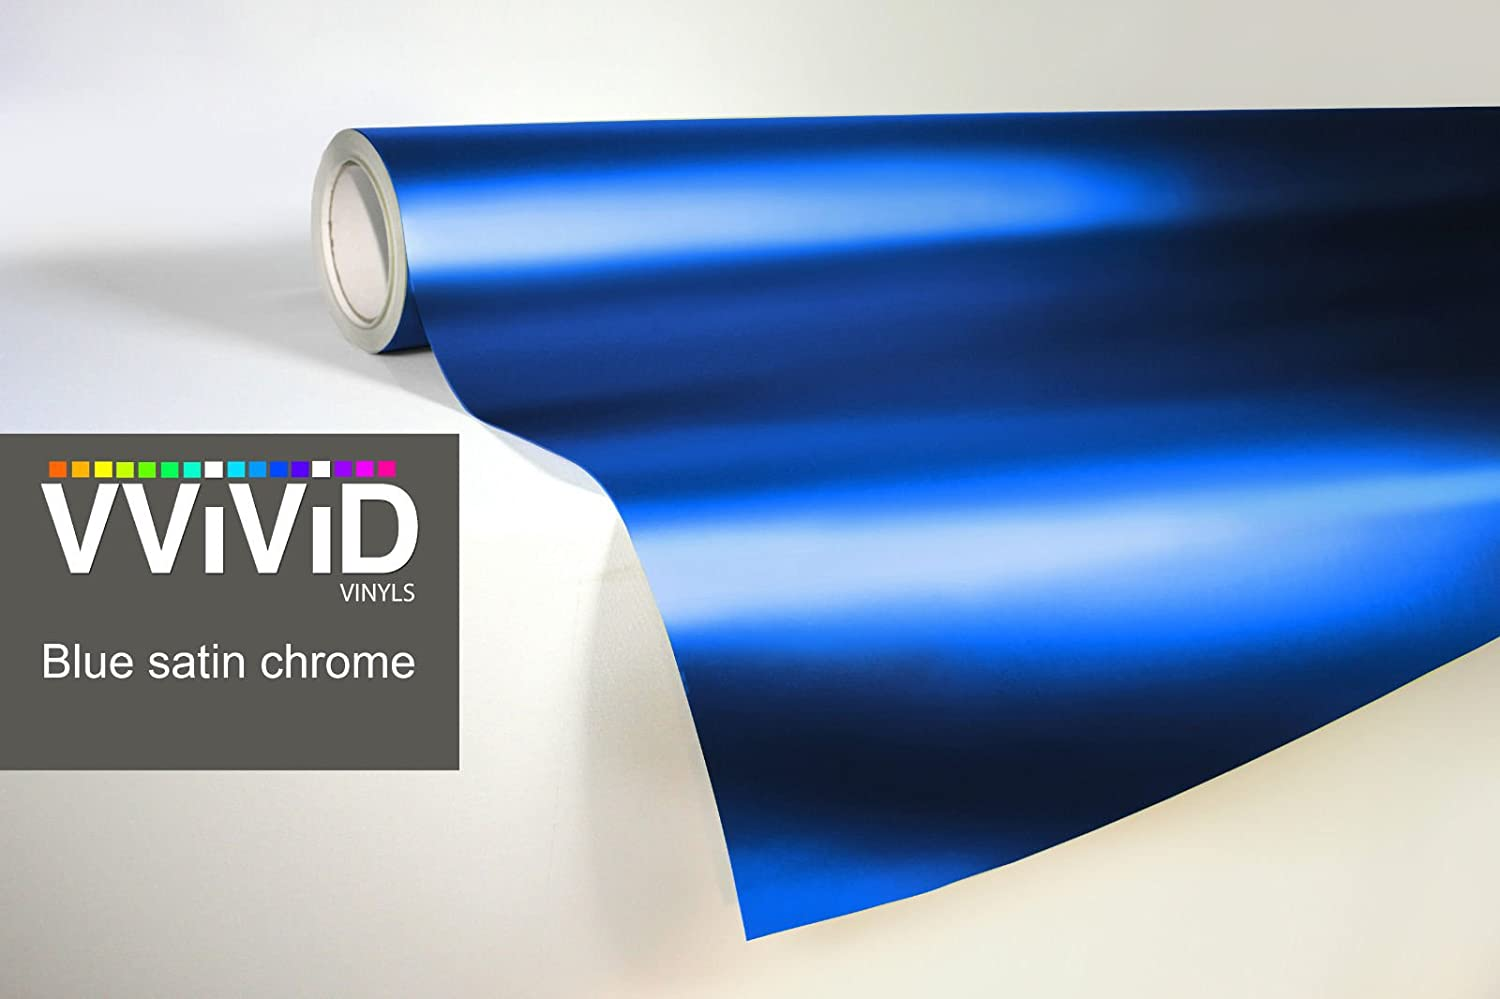 VViViD Blue Satin Chrome Vinyl Wrap Stretch Conform DIY Easy to Use Air-Release Adhesive 3ft x 5ft